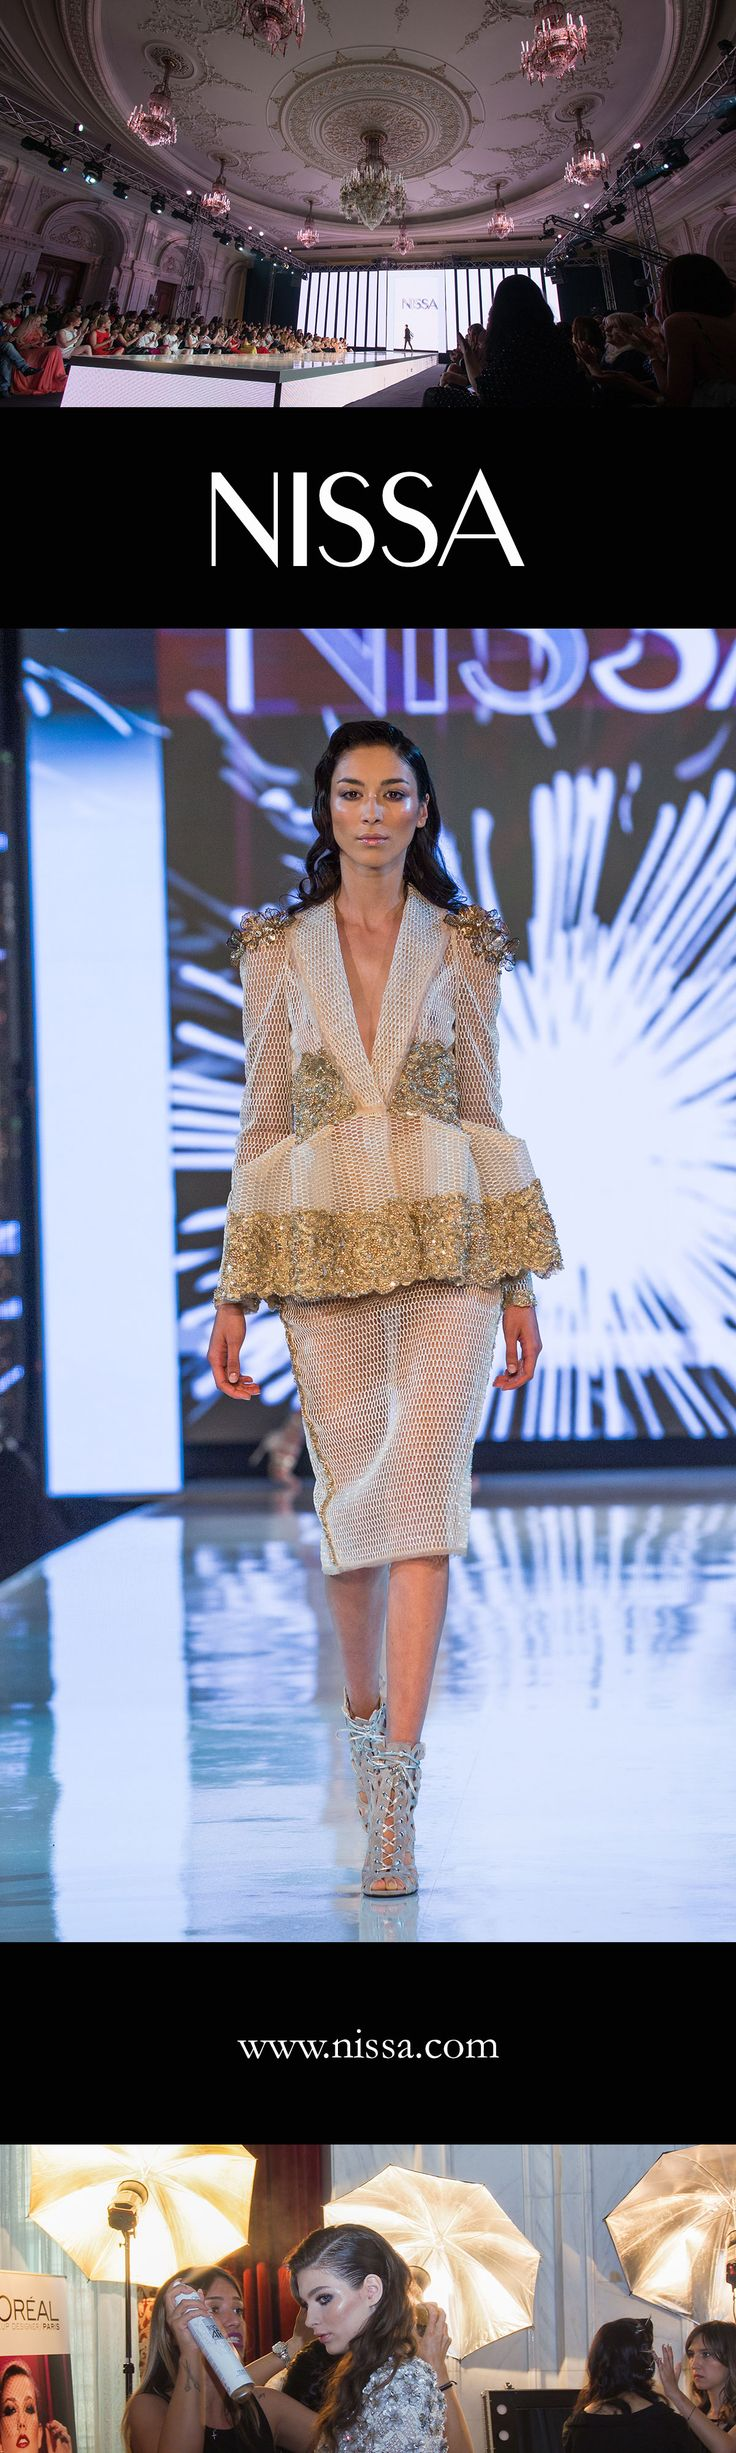 #nissa #musthave #evening #ss2016 #gold #flowers #night #partywear #women #fashion #fashionista #style #look #outfit #backstage #fashionshow #nissastyless2016